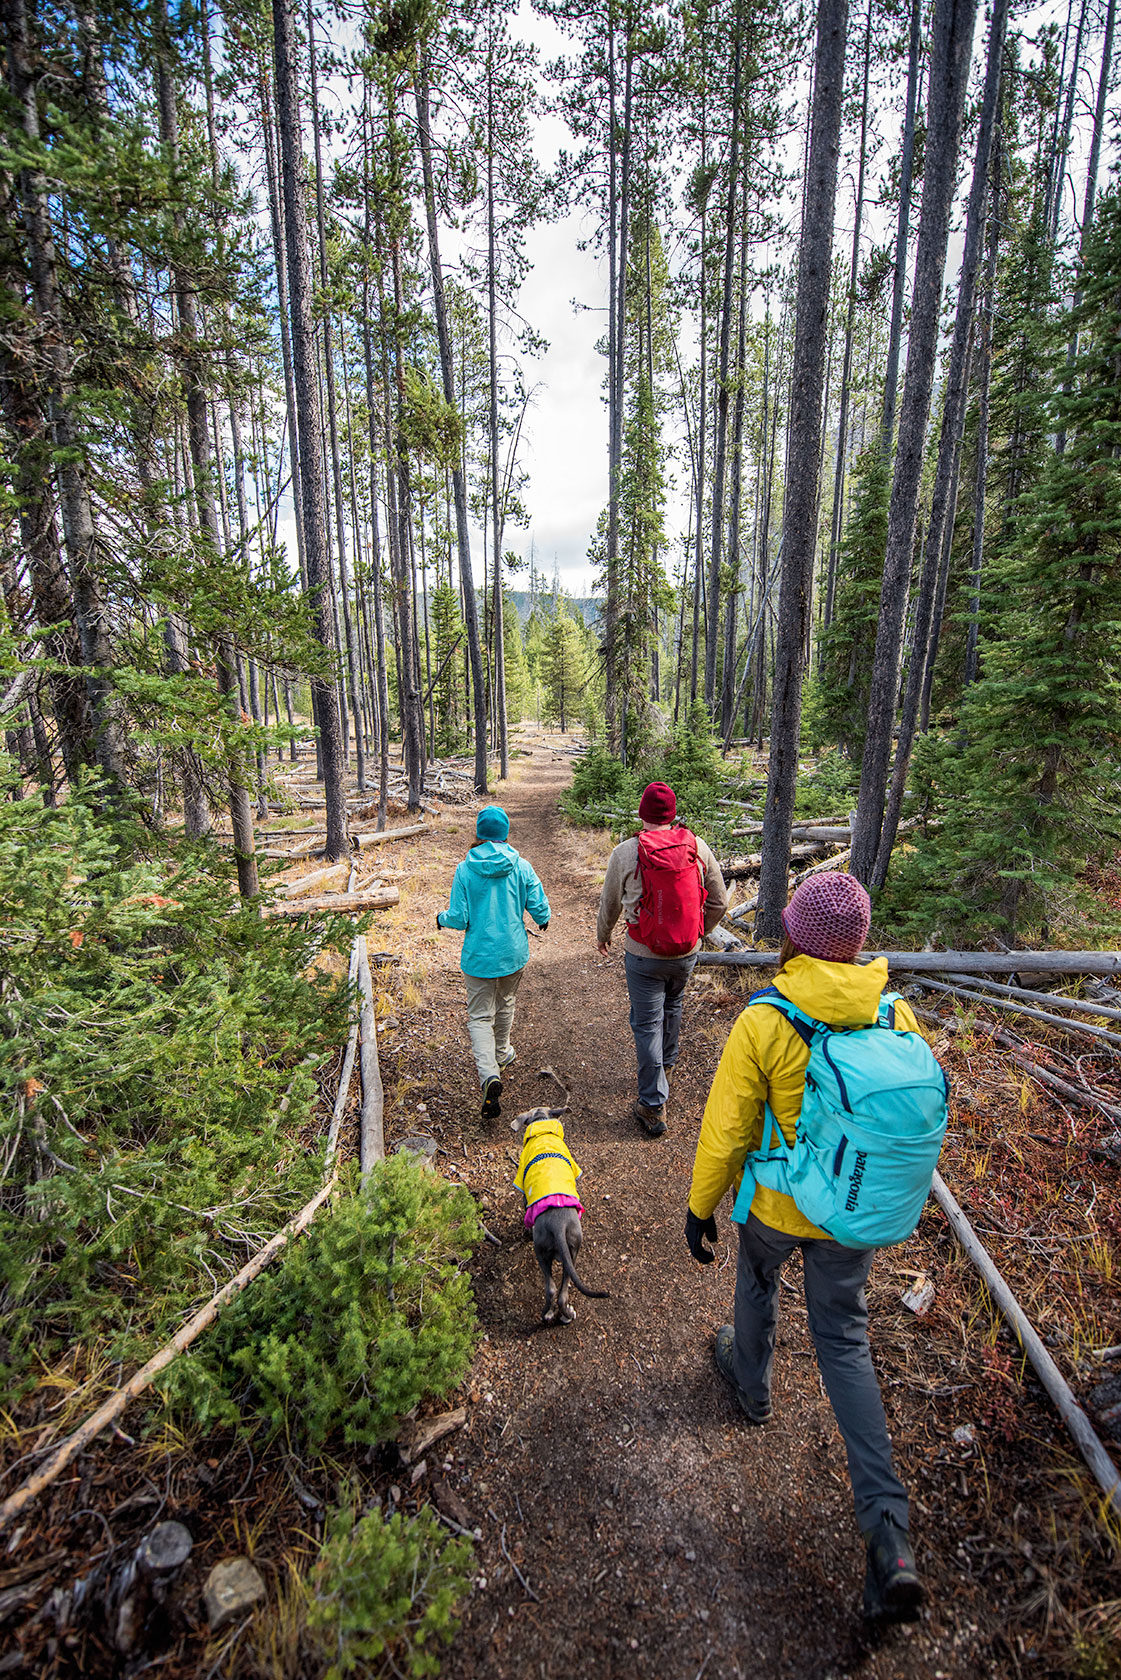 austin-trigg-patagonia-sawtooth-hiking-advenure-wilderness-forest-idaho-outside-lifestyle-day-fall-weather-mountains-trees-trail.jpg